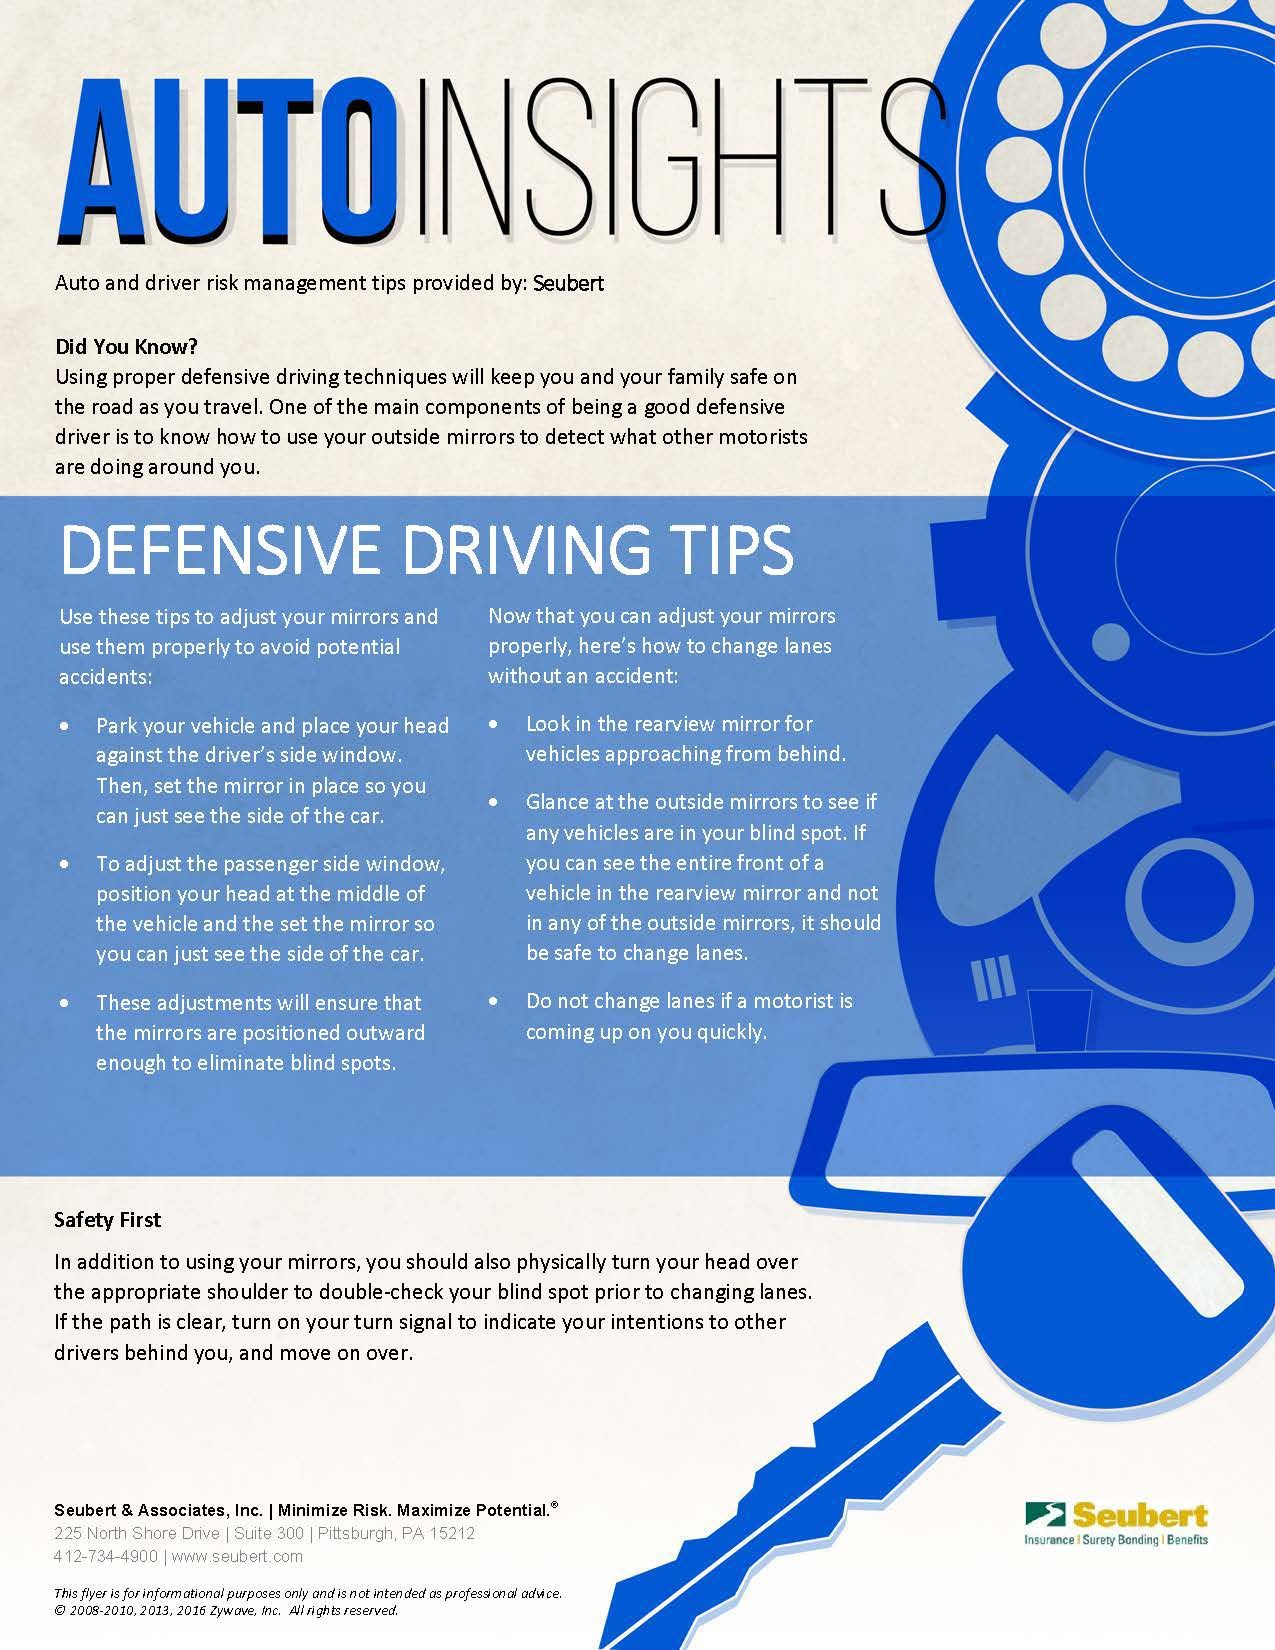 Auto Insights Defensive Driving Tips Auto, Risk management